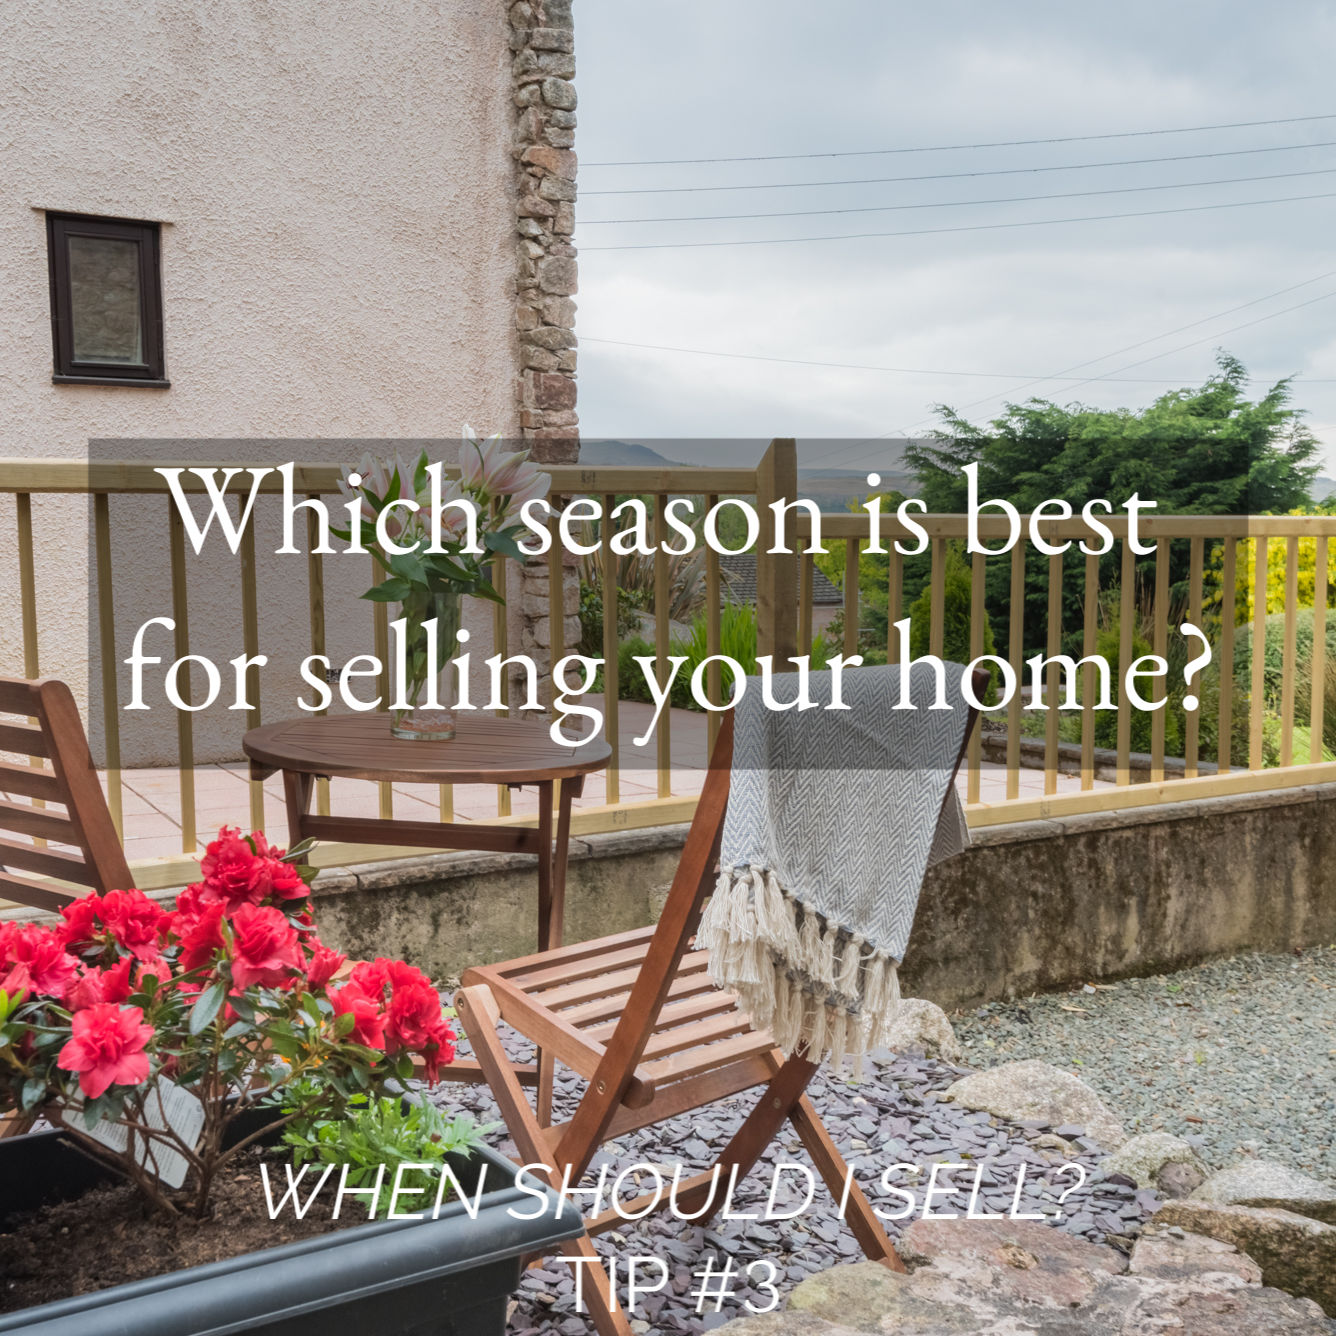 tg3-which-season-is-best-for-selling-your-home